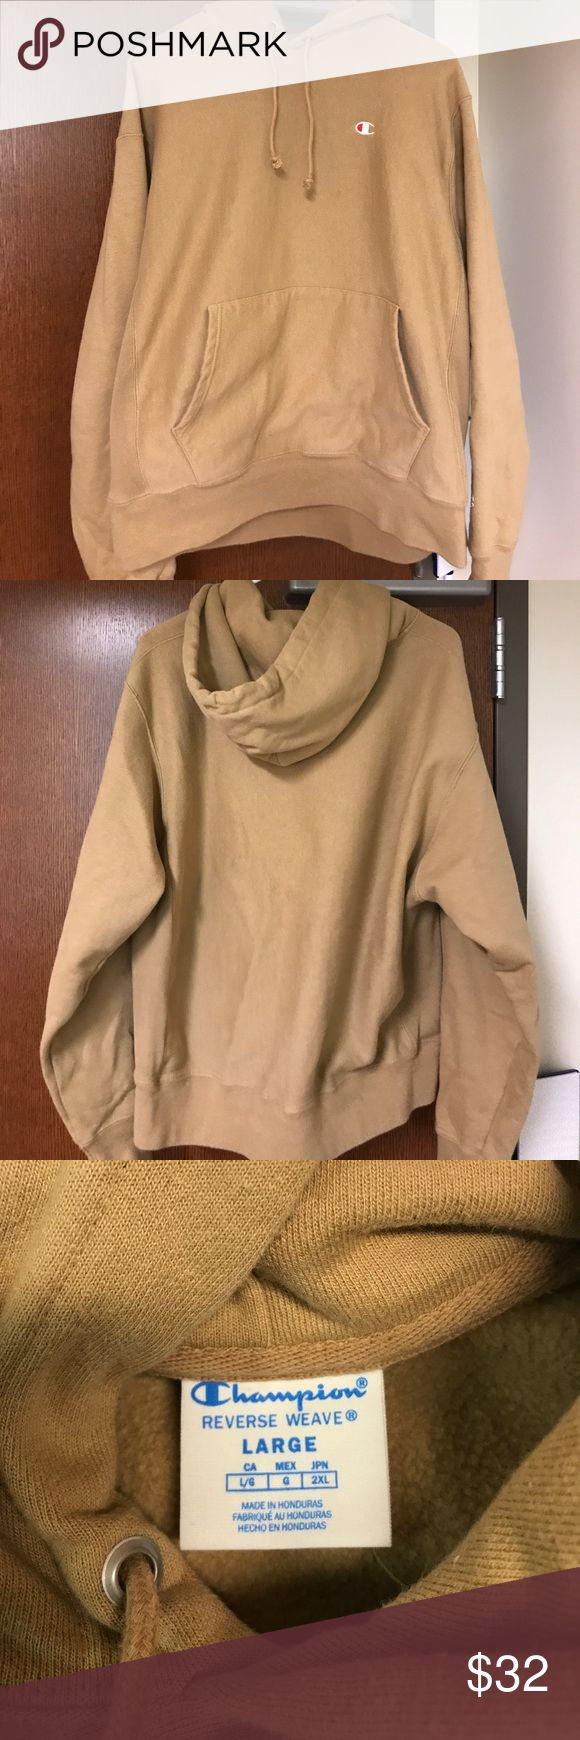 Champion Hoodie Reverse Weave A tan Champion reverse weave hoodie; size L Champion Shirts Sweatshirts & Hoodies